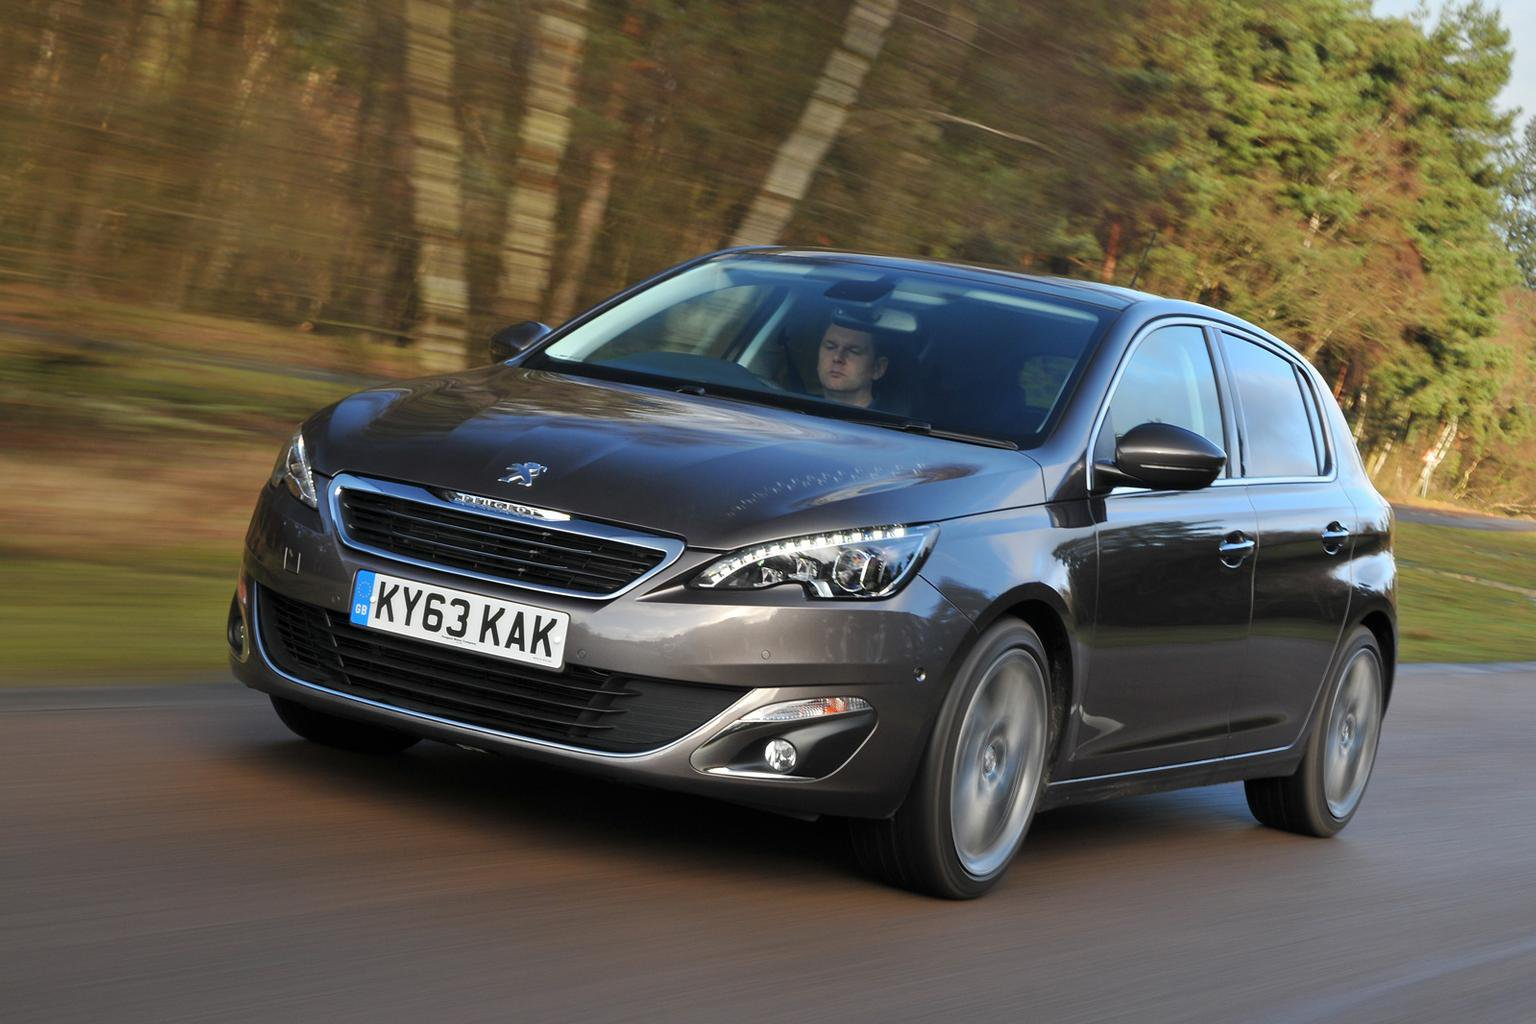 Save more than 4600 on the Peugeot 308, and more great deals